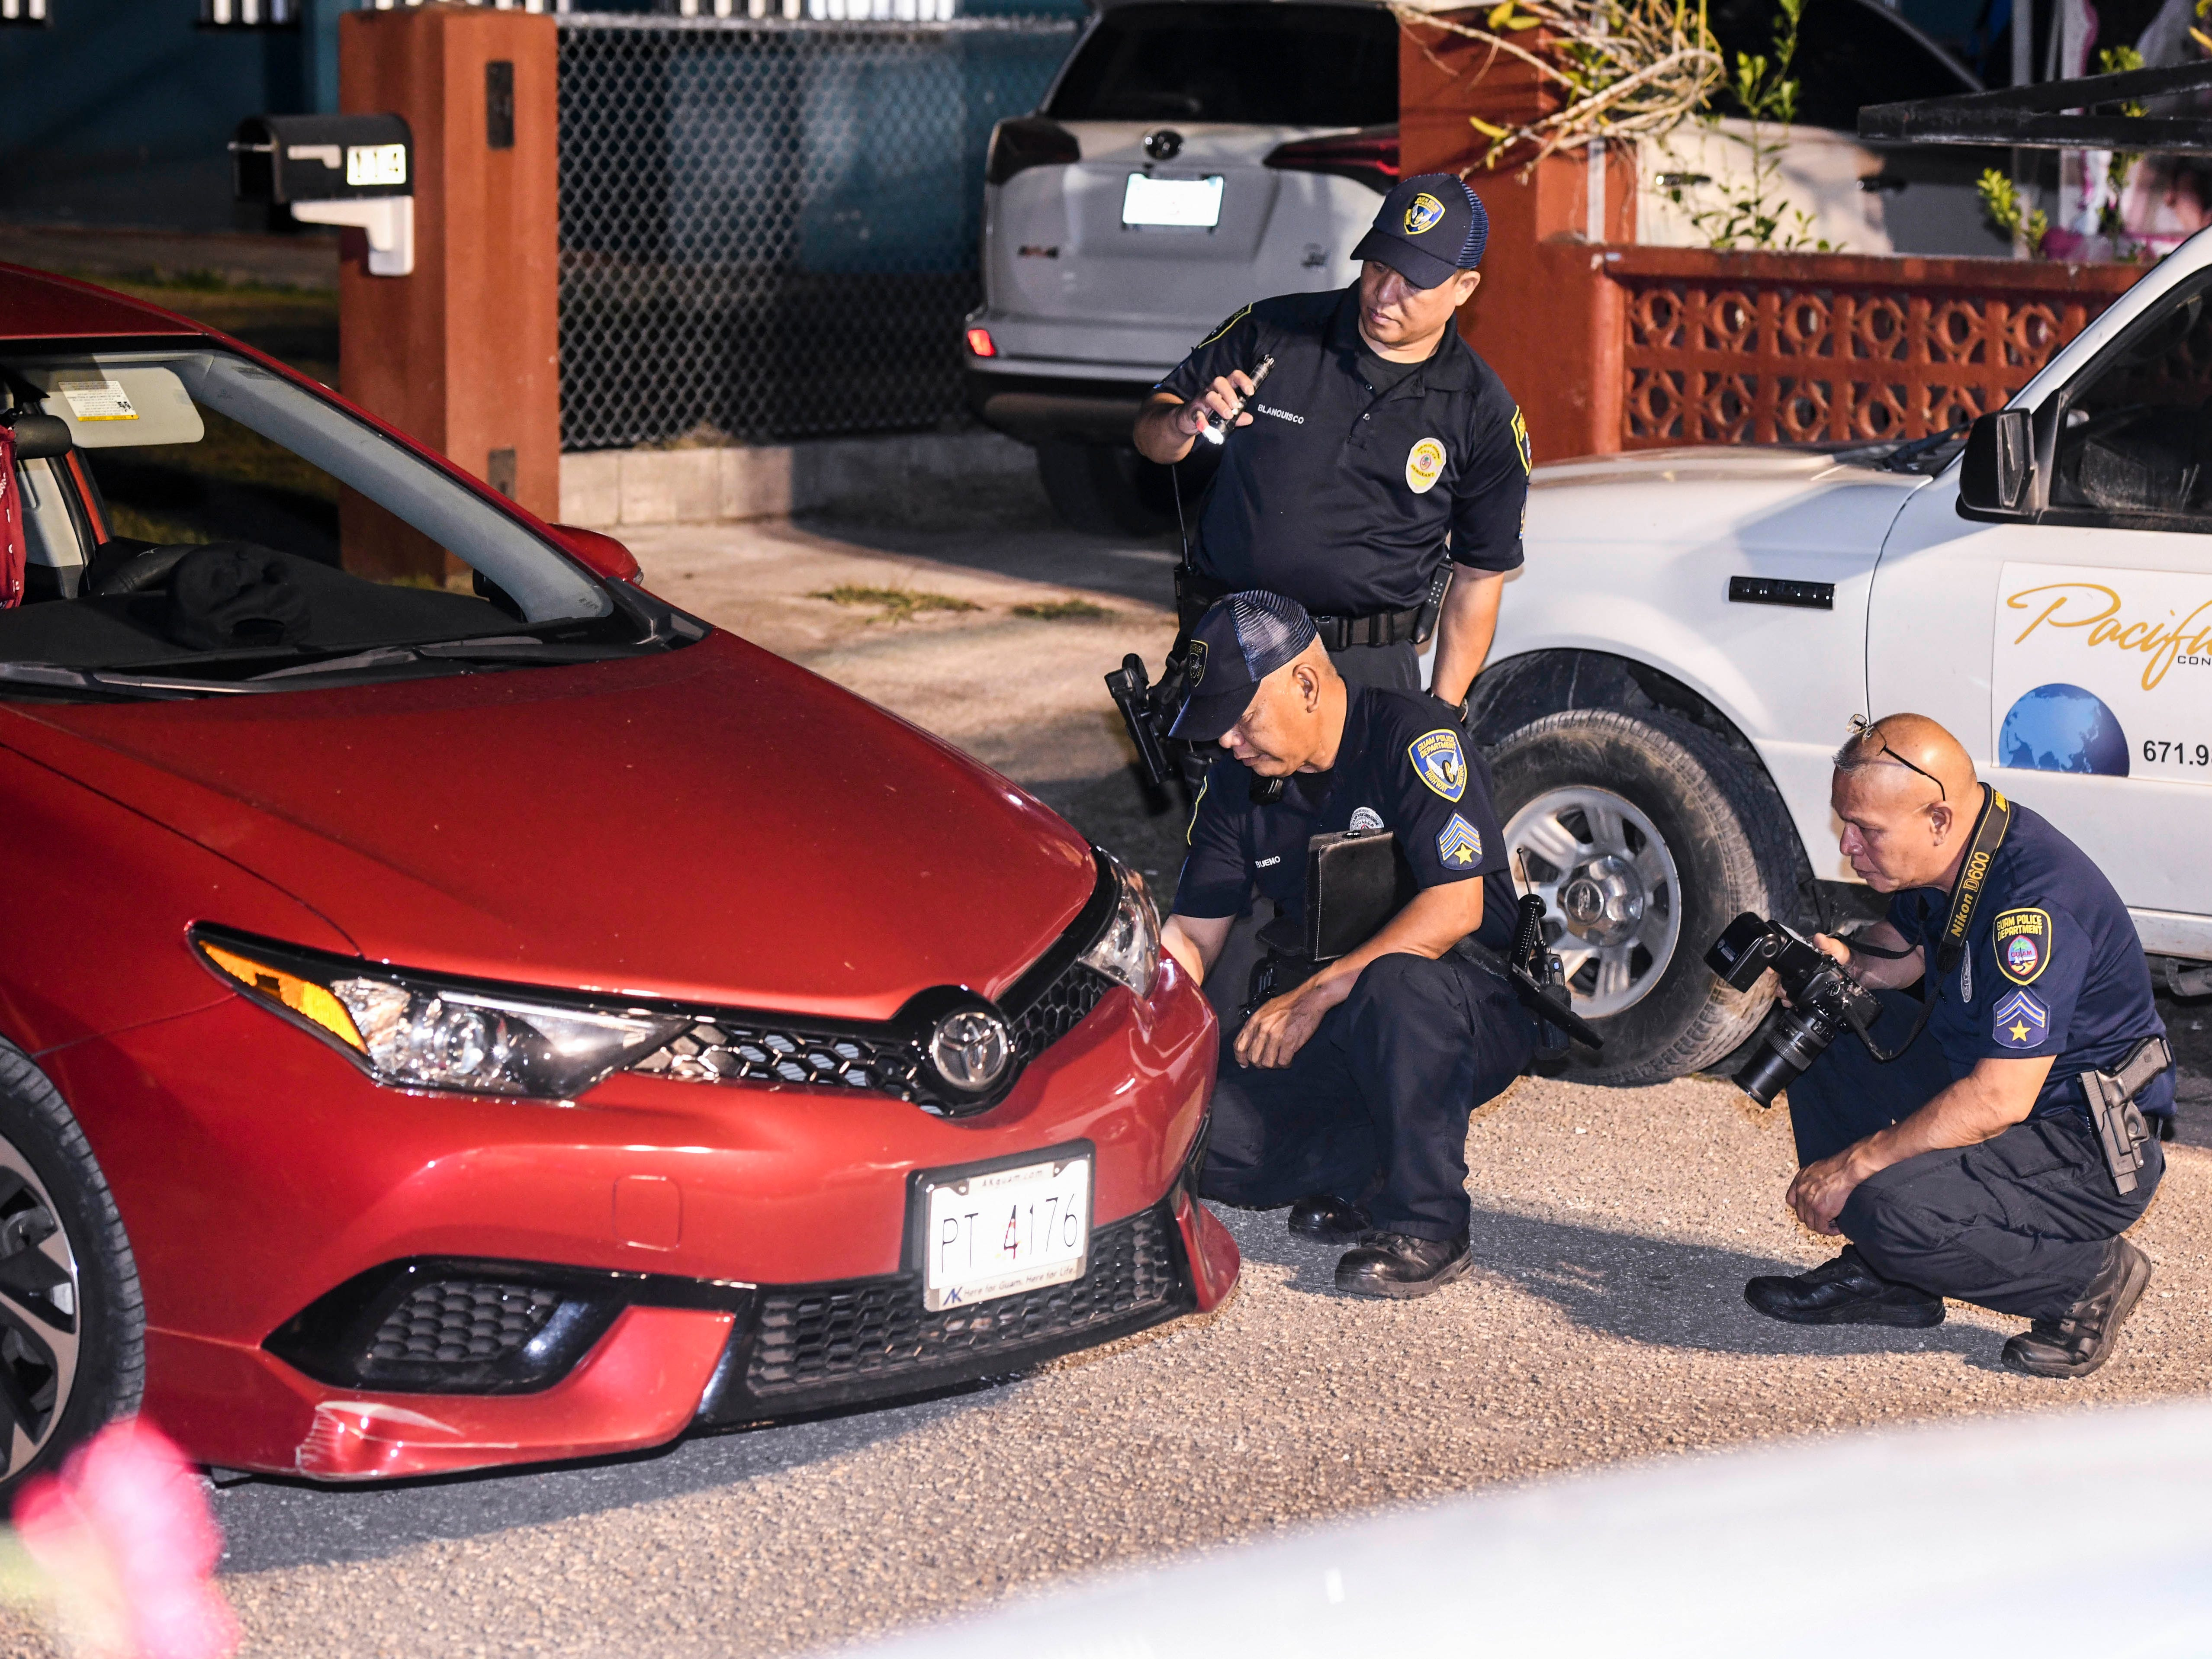 Officers from the Guam Police Department conduct an investigation of a fatal auto-pedestrian incident in Dededo on the evening of Wednesday, May 7, 2019. Four-year-old Jericho Zion David died, after being struck in front of his family's home, by a driver operating a Red Toyota Corolla.